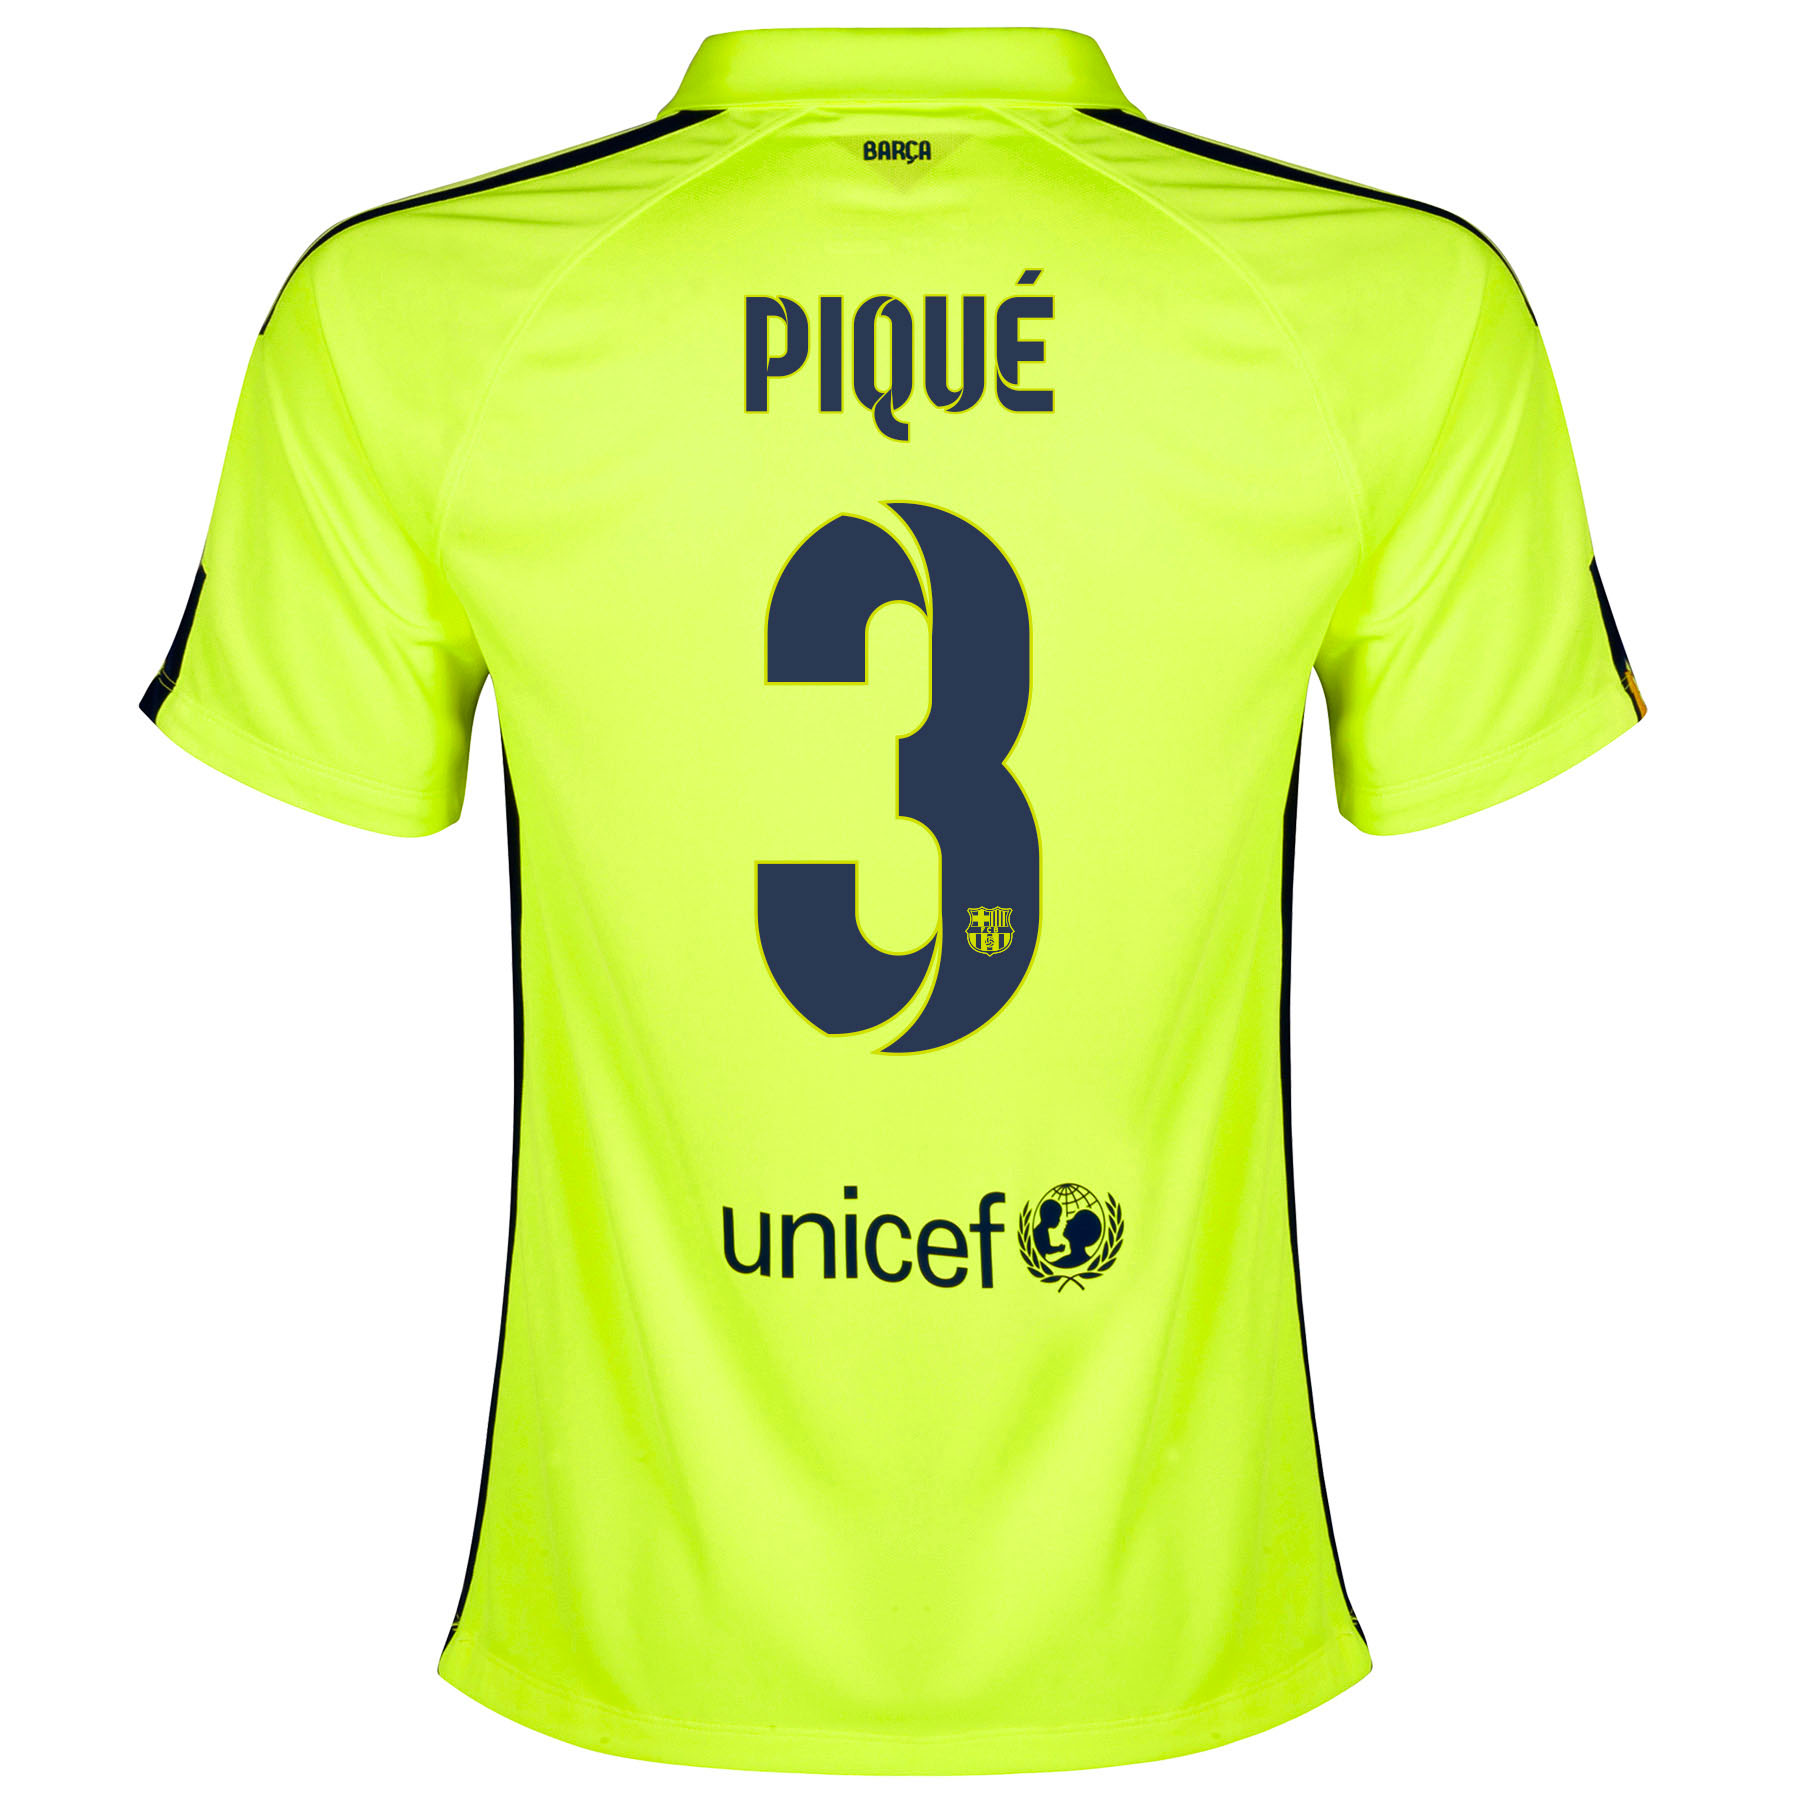 Barcelona Third Shirt 2014/15 - Womens Yellow with Pique 3 printing